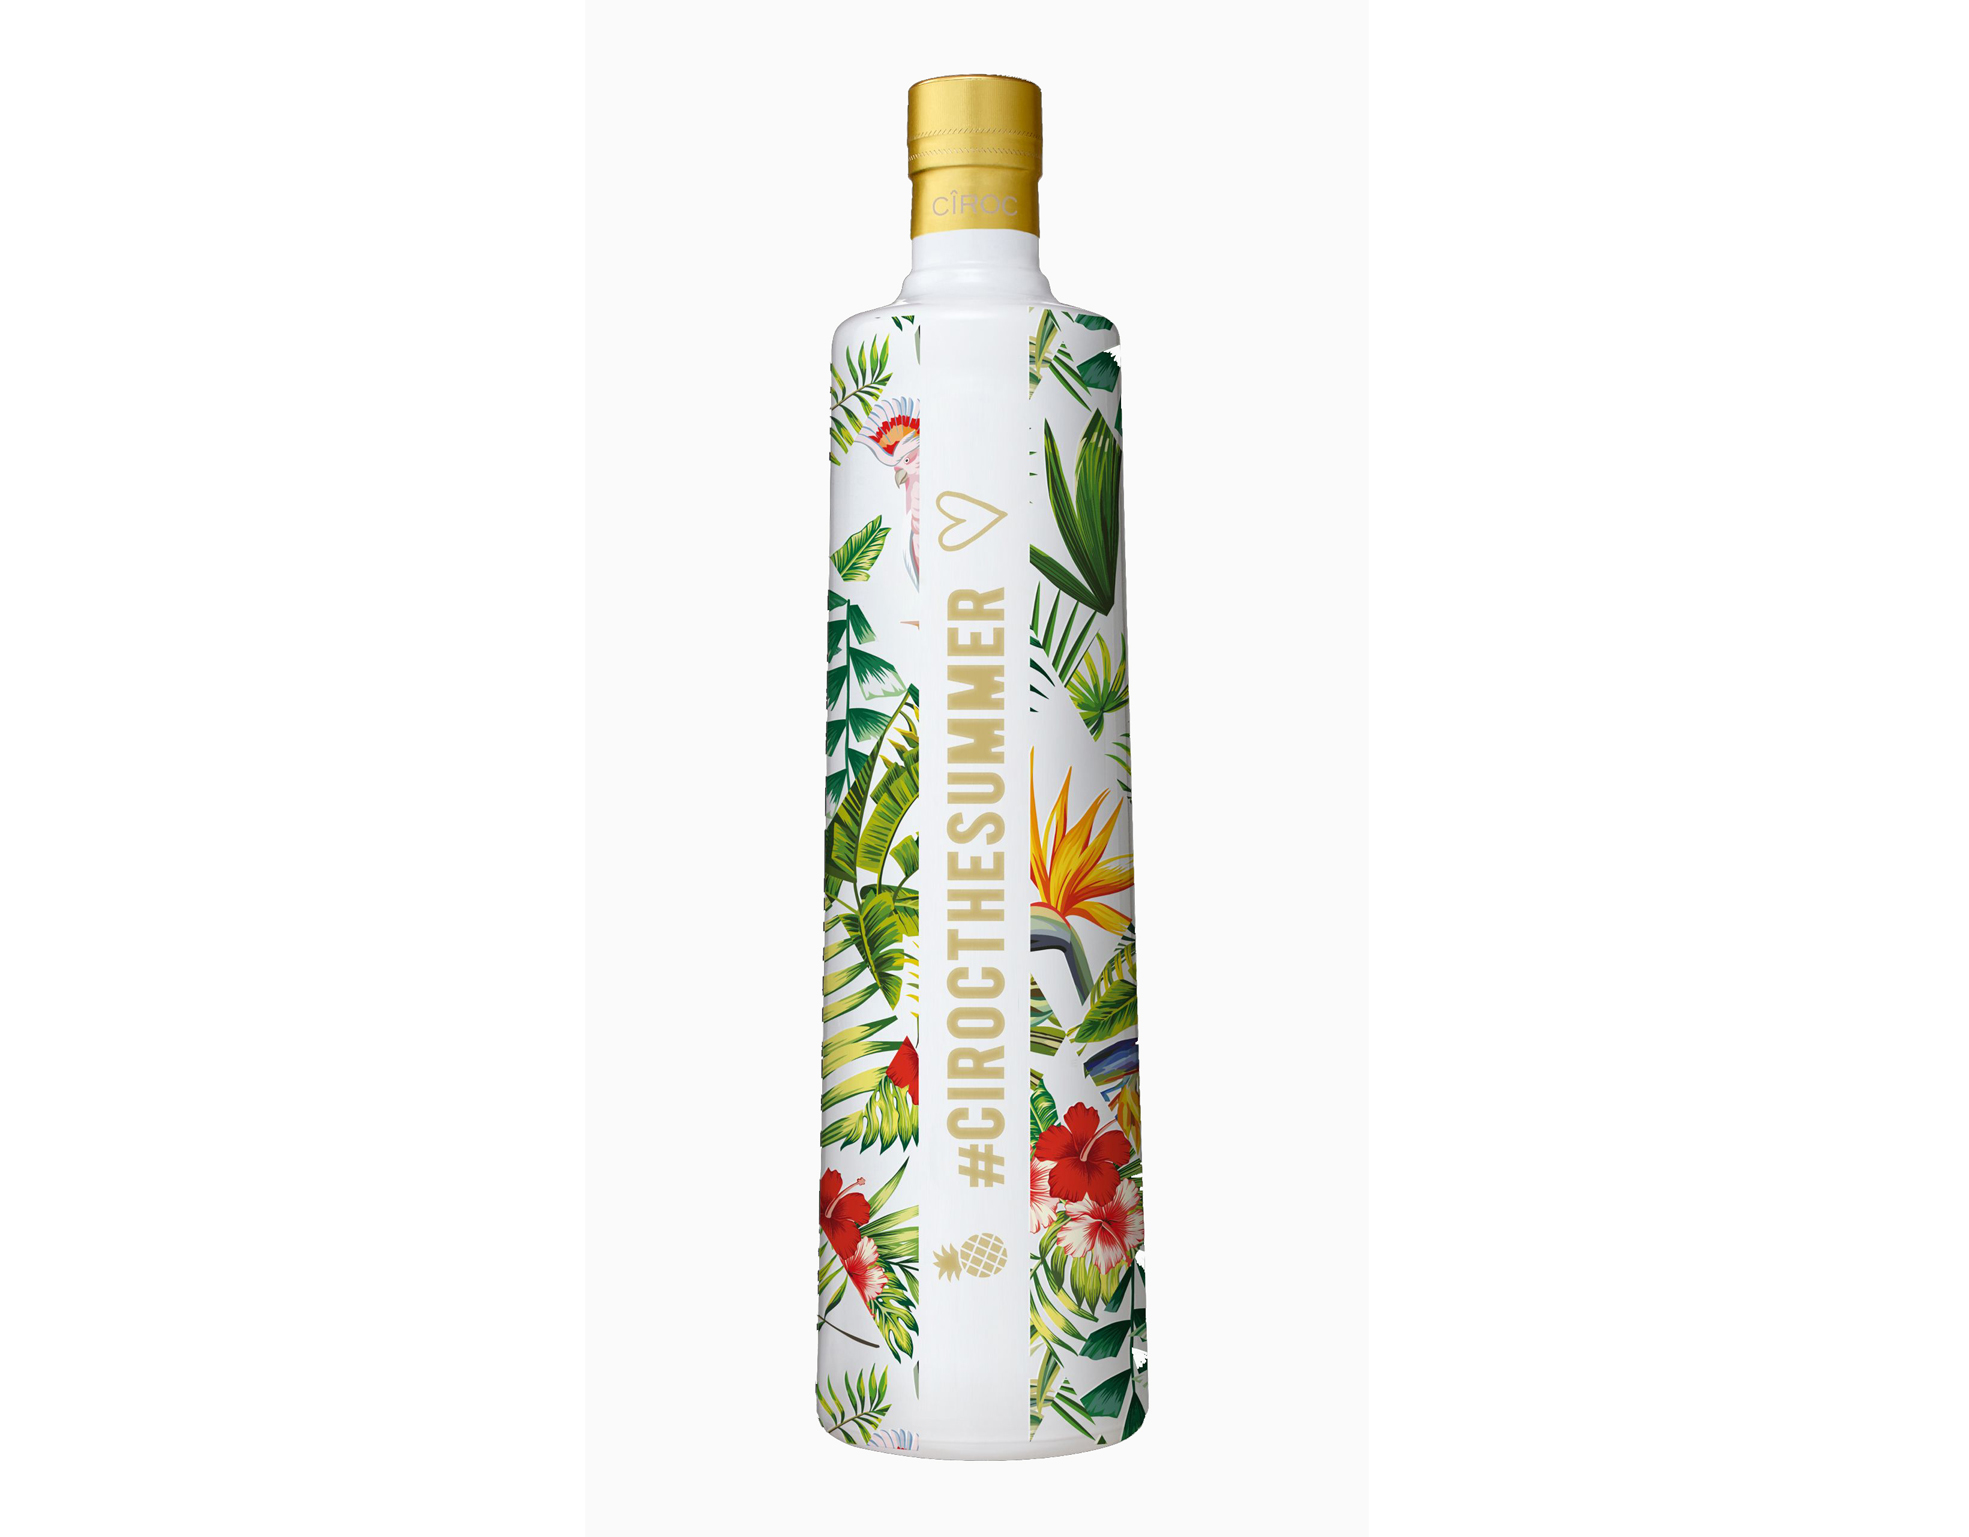 Ciroc Limited Edition Summer Colada